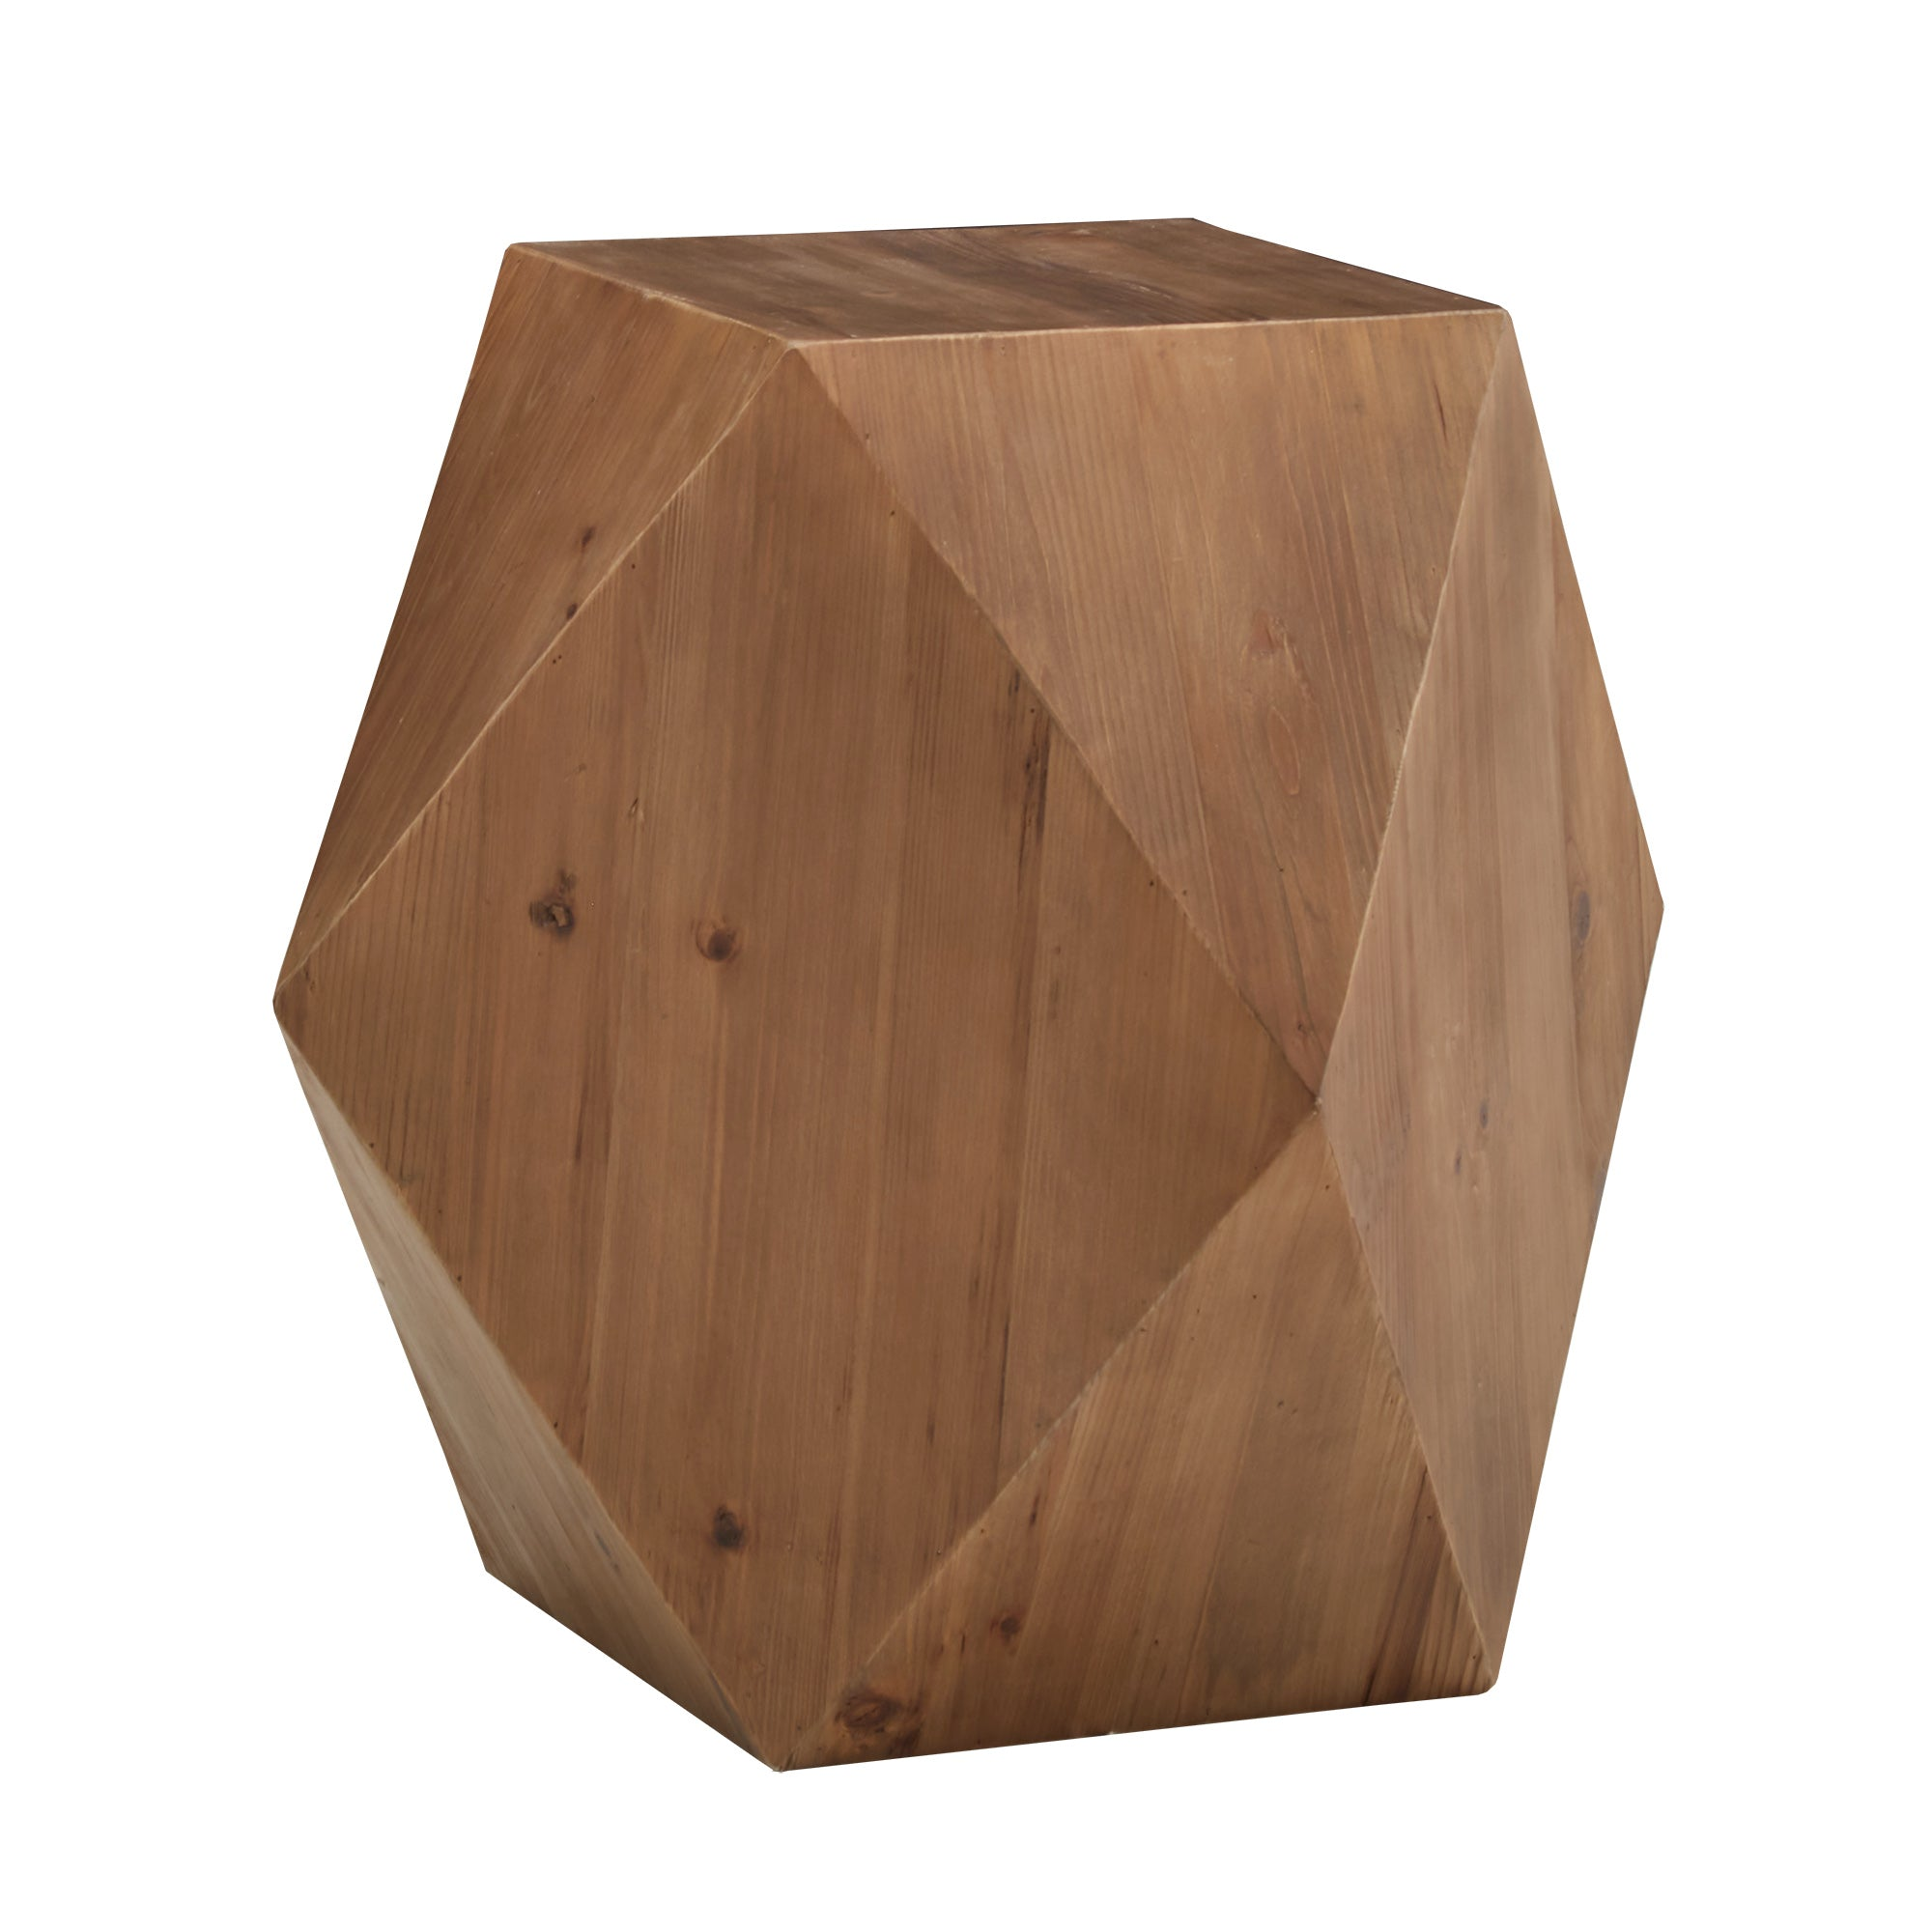 Reclaimed Wood Geometric End Table